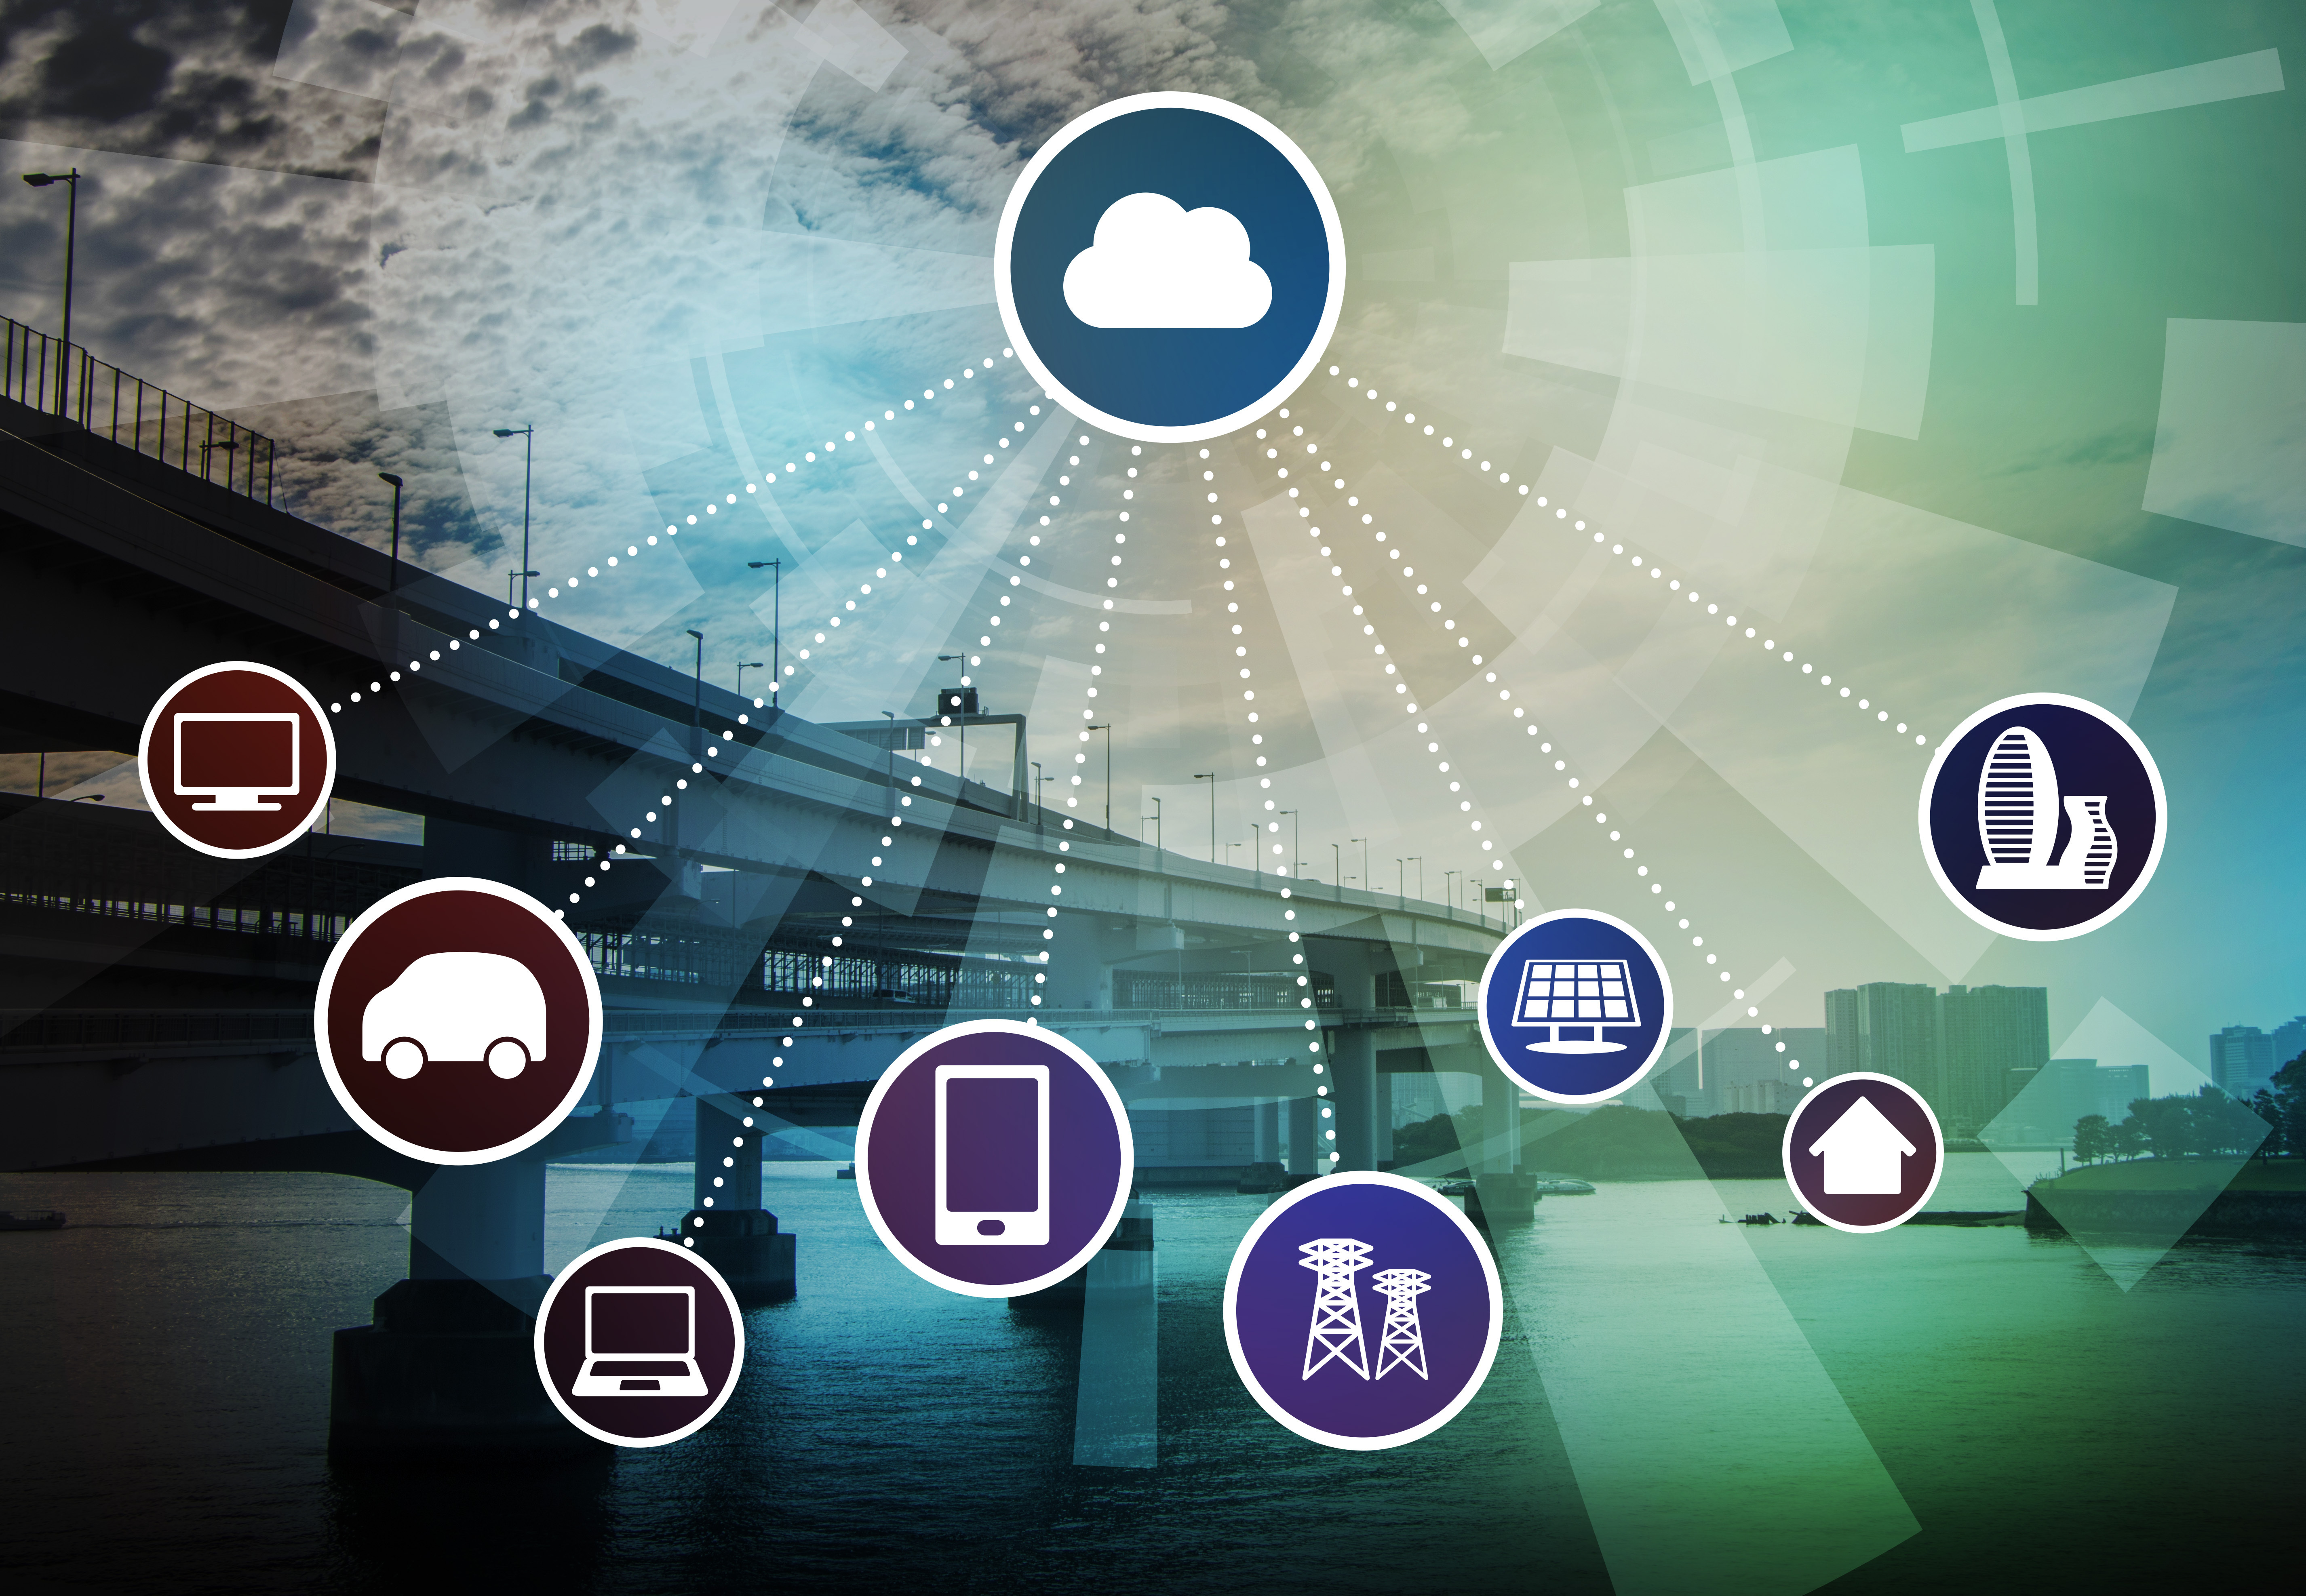 Azure IoT Suite Services and Solutions